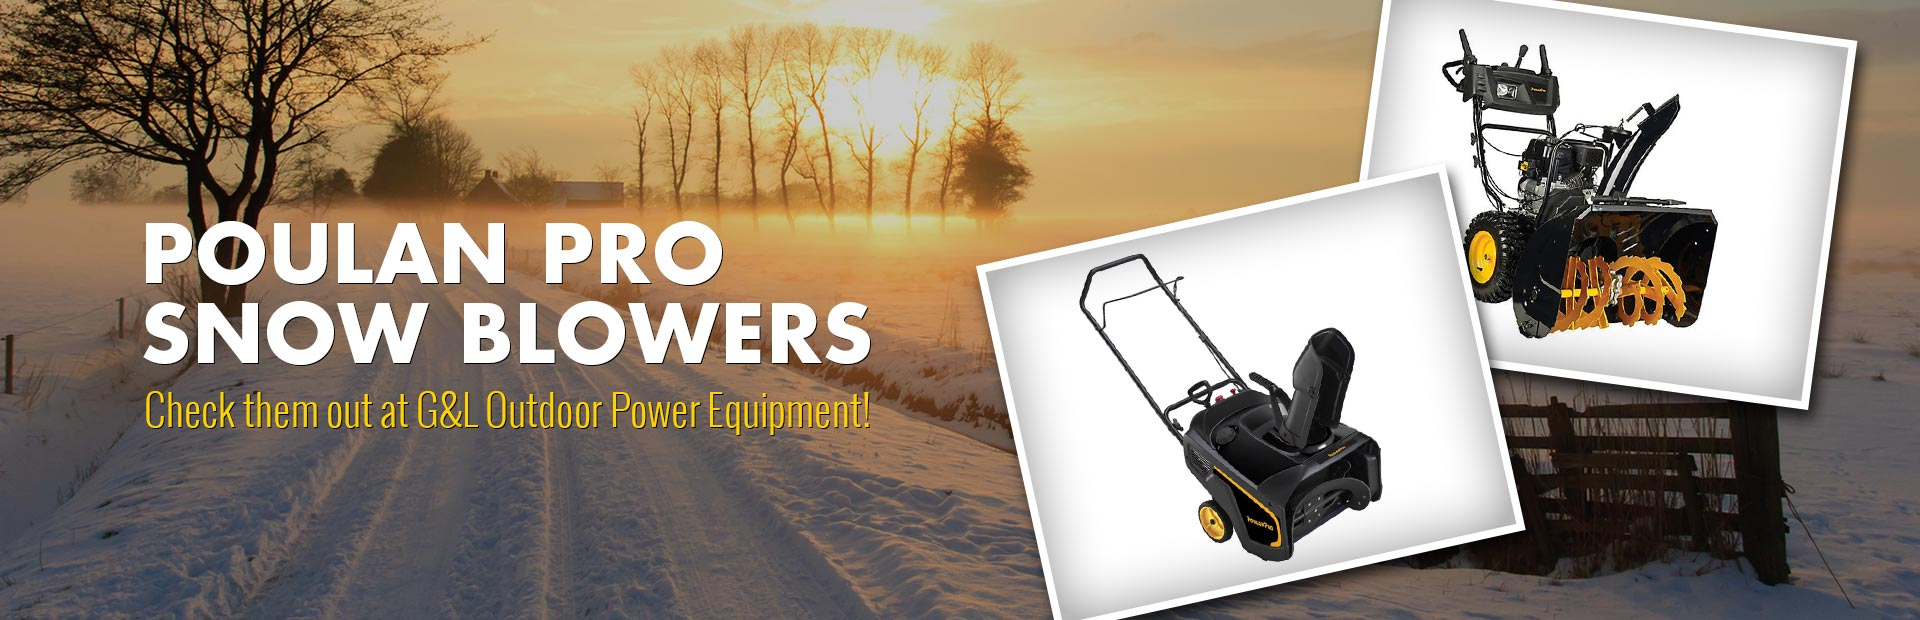 Poulan Pro Snow Blowers: Check them out at G&L Outdoor Power Equipment!